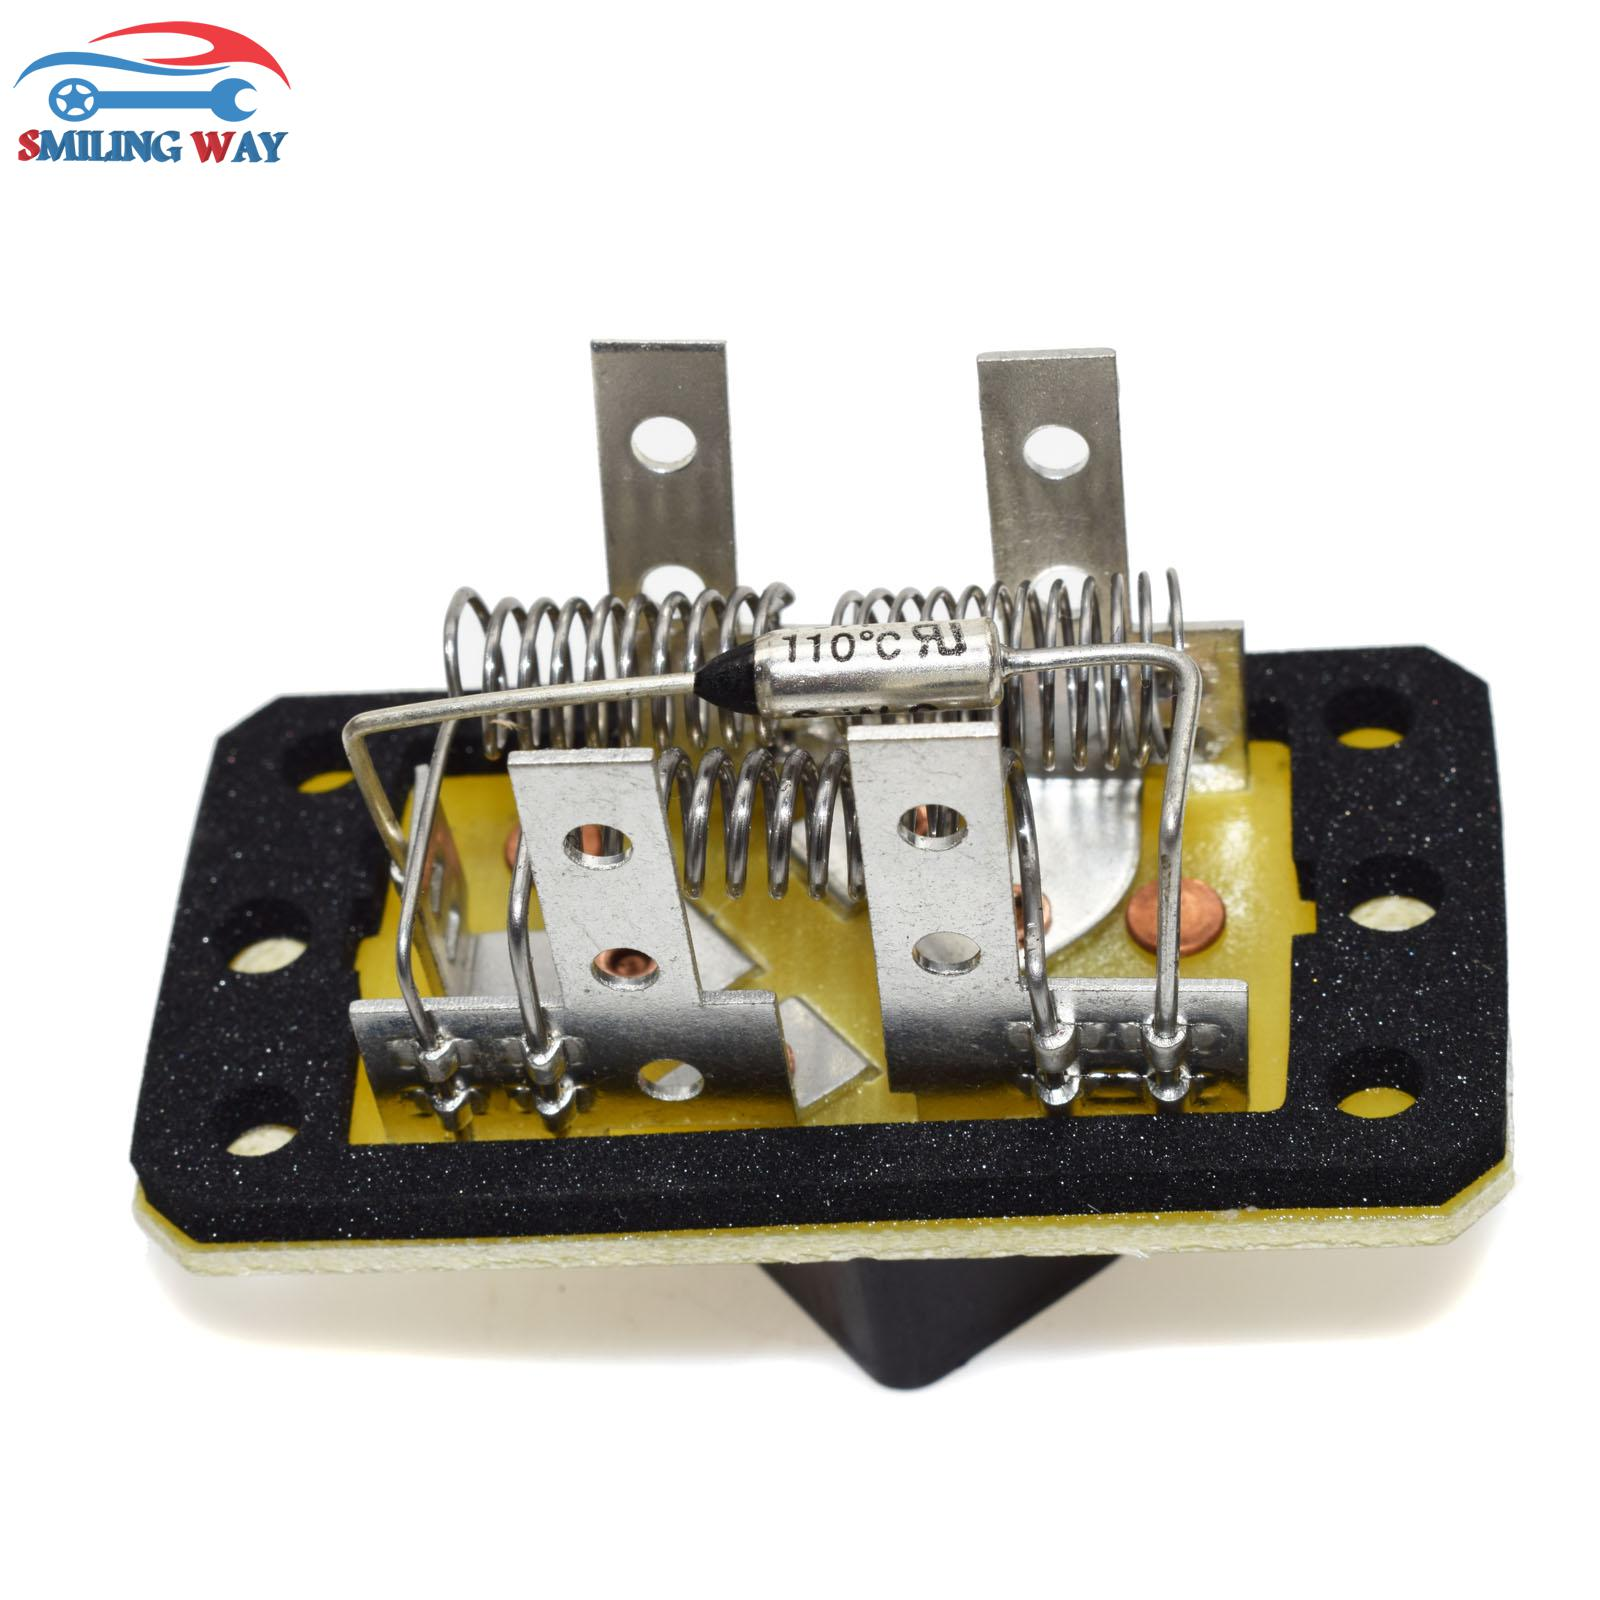 smiling way heater blower motor resistor for ford escape expedition f 150 mustang mazda tribute mariner villager lincoln [ 1600 x 1600 Pixel ]